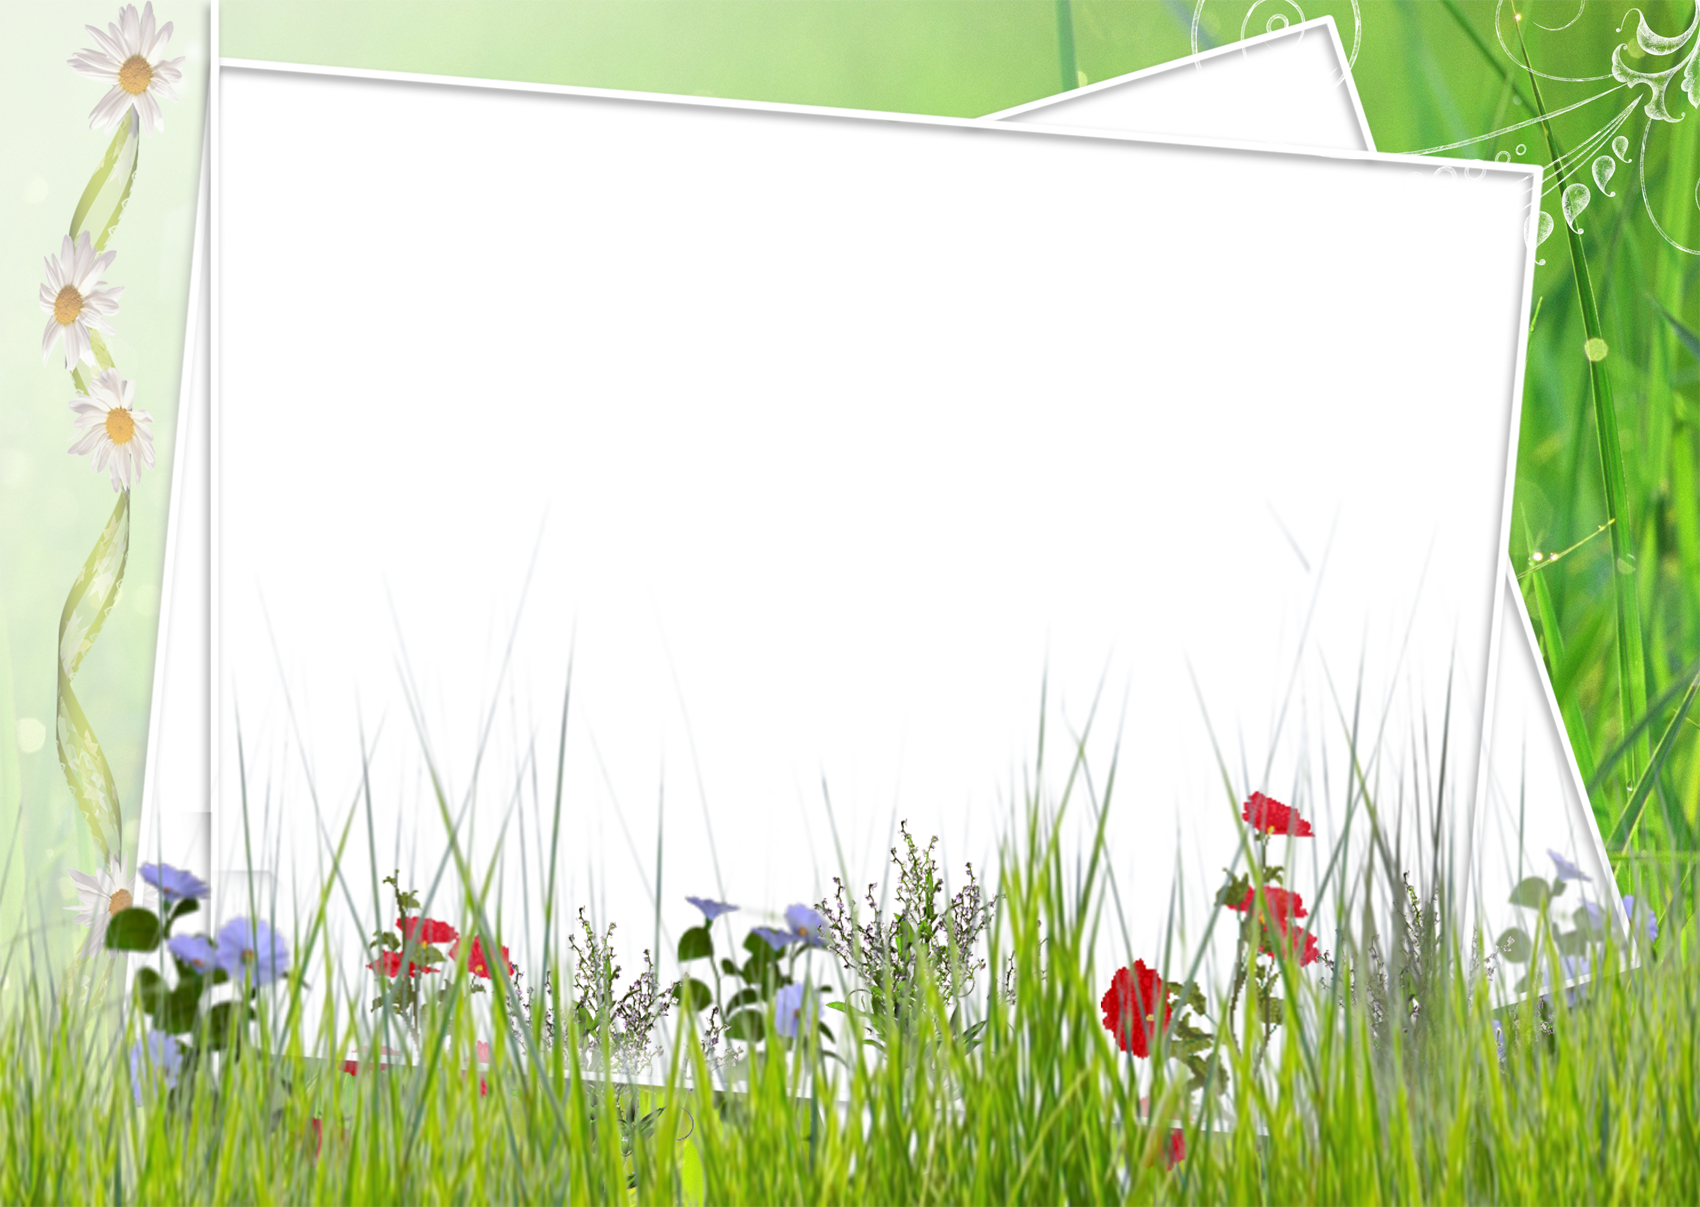 Flower field clipart image black and white library Green and White Transparent Frame with Field Flowers | Gallery ... image black and white library